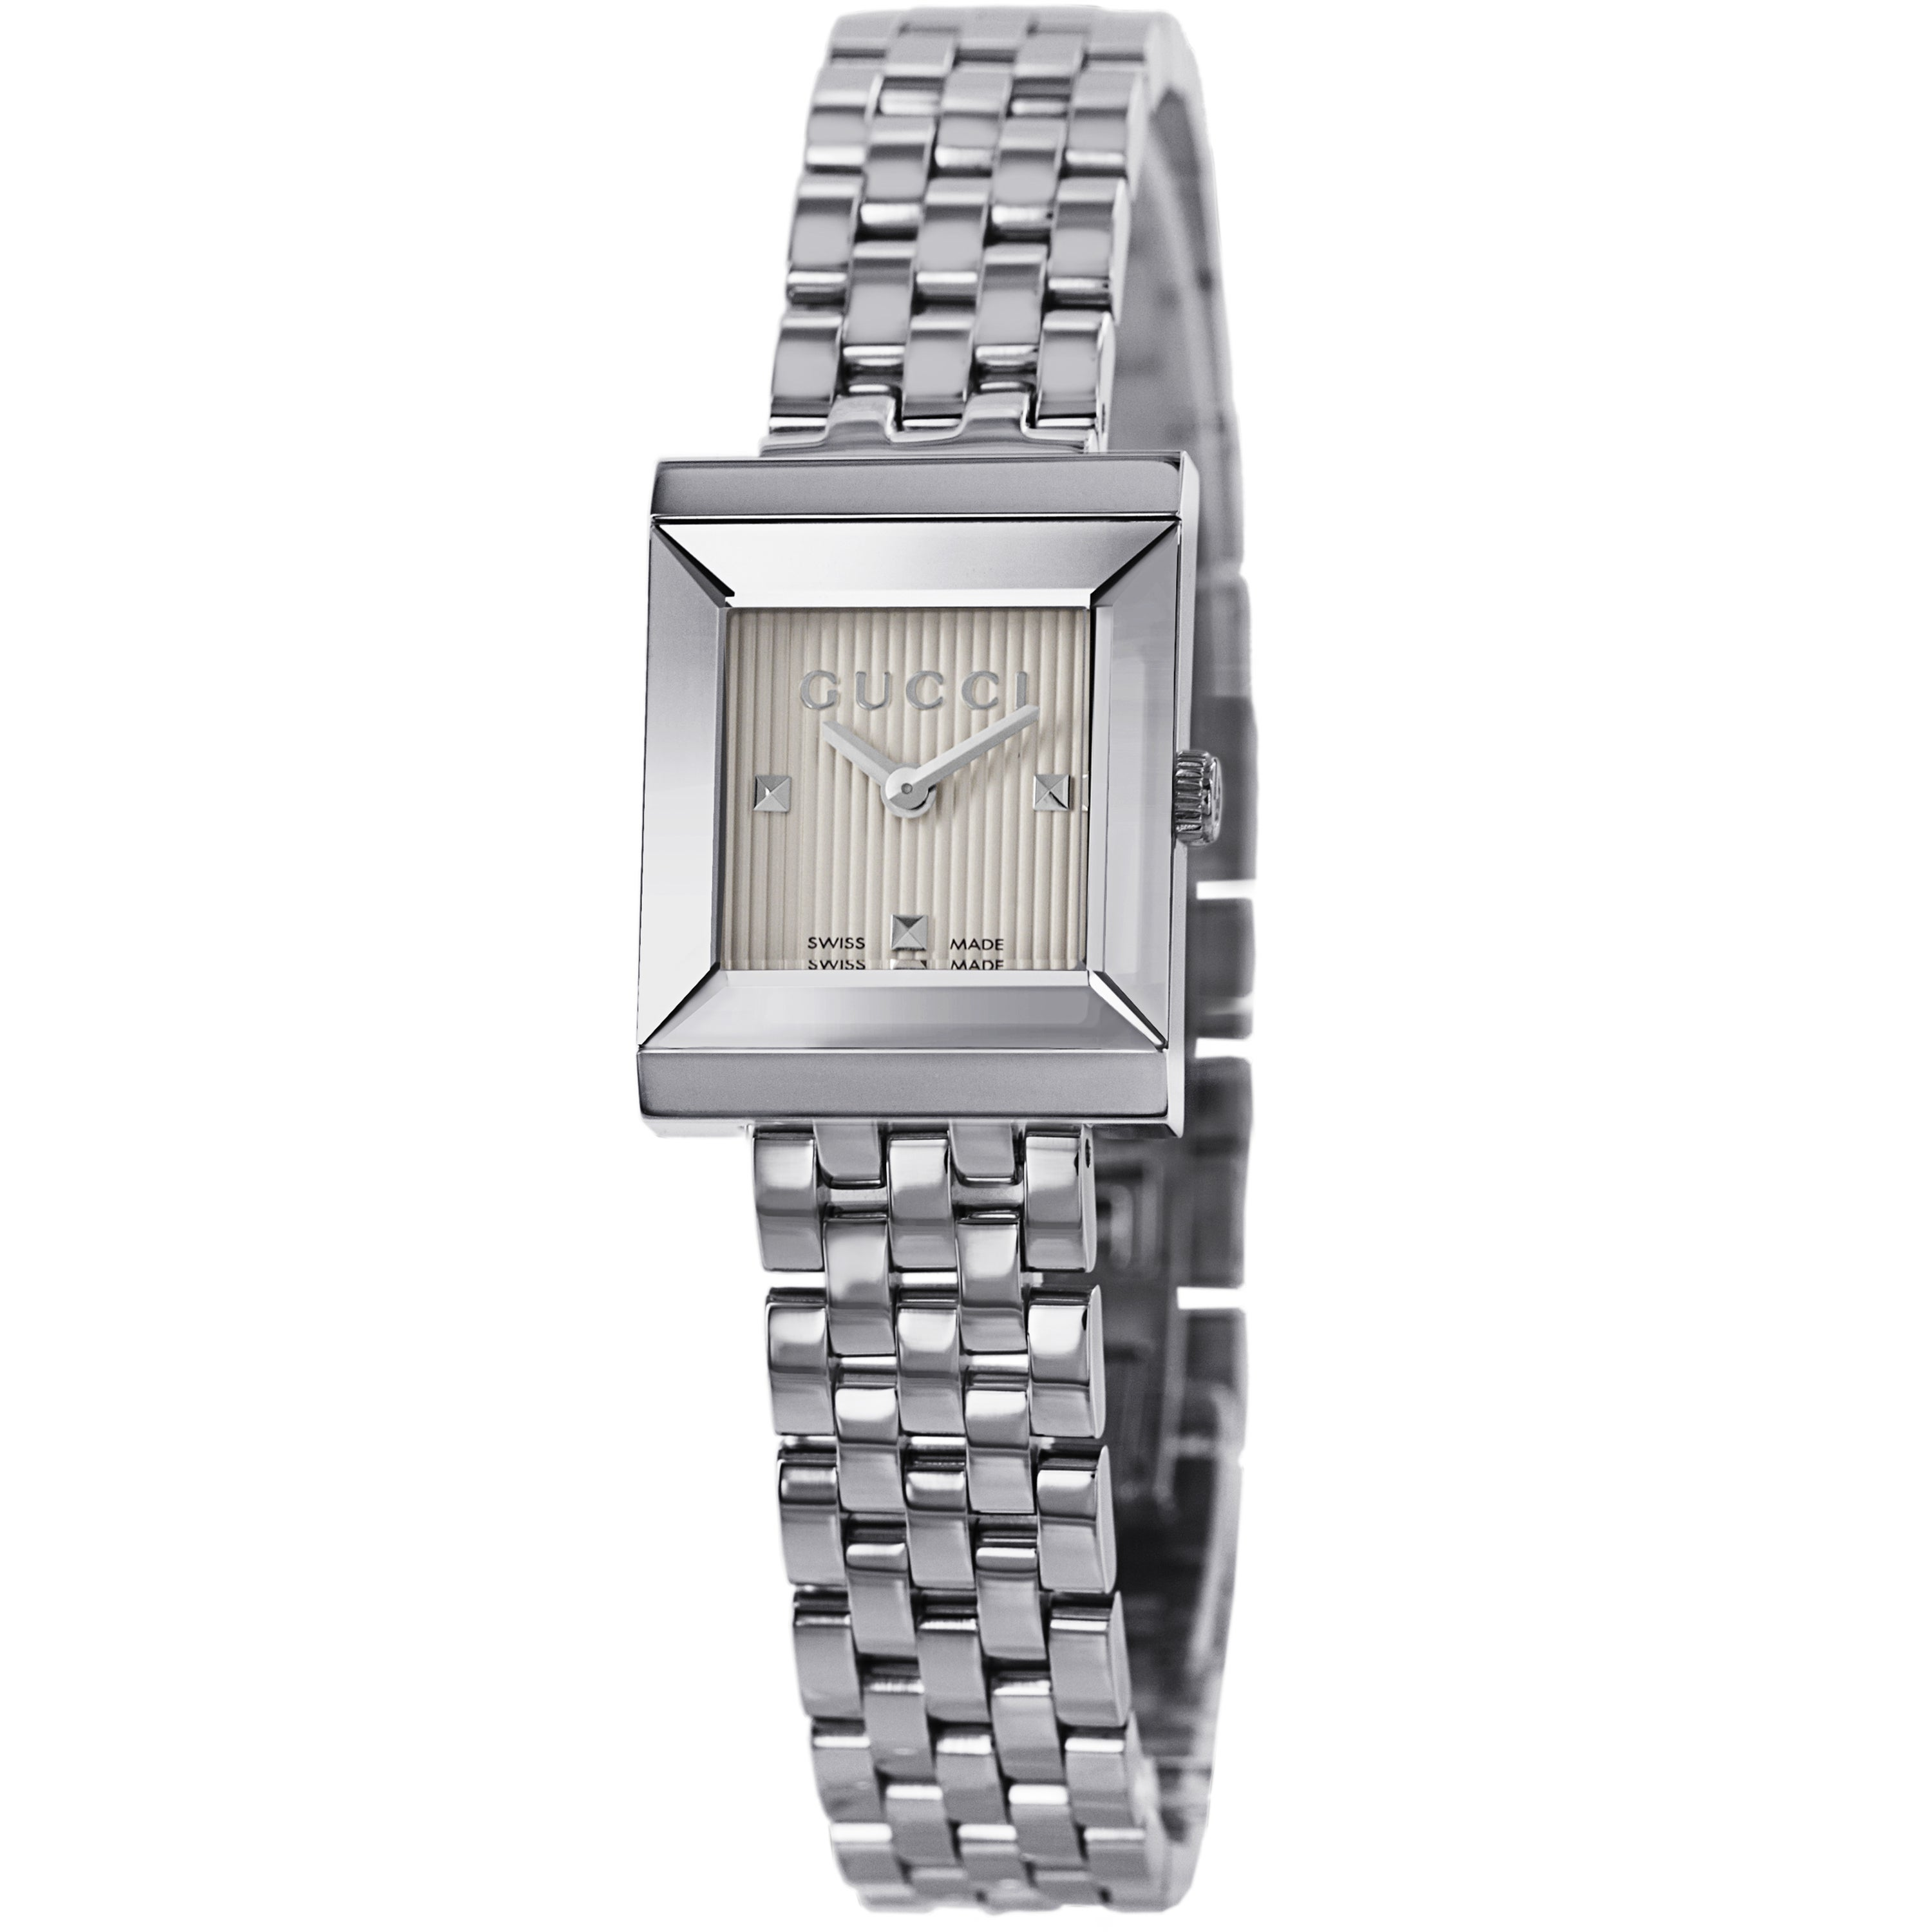 dd085630543 Shop Gucci Women s YA128402  G Frame  Silver Dial Stainless Steel Bracelet  Quartz Watch - Free Shipping Today - Overstock - 9437211